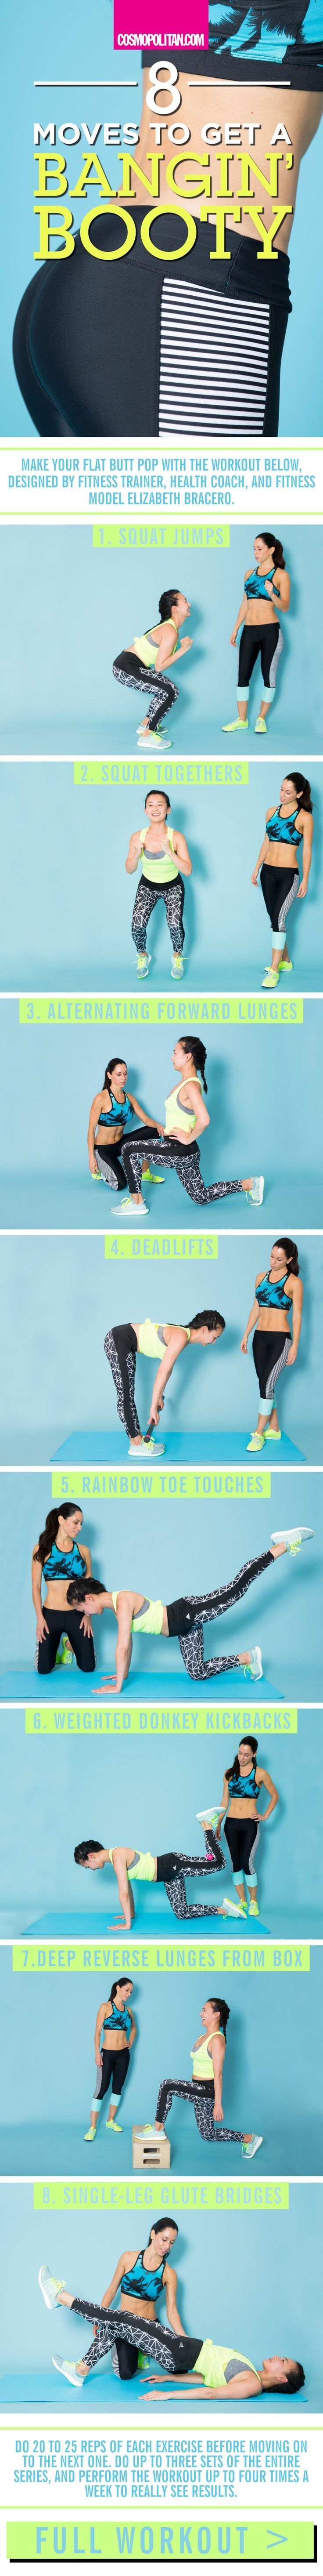 HOW TO GET A BIGGER BUTT: Give your backside a sexy pop (and strength) with this workout and these fitness tips.